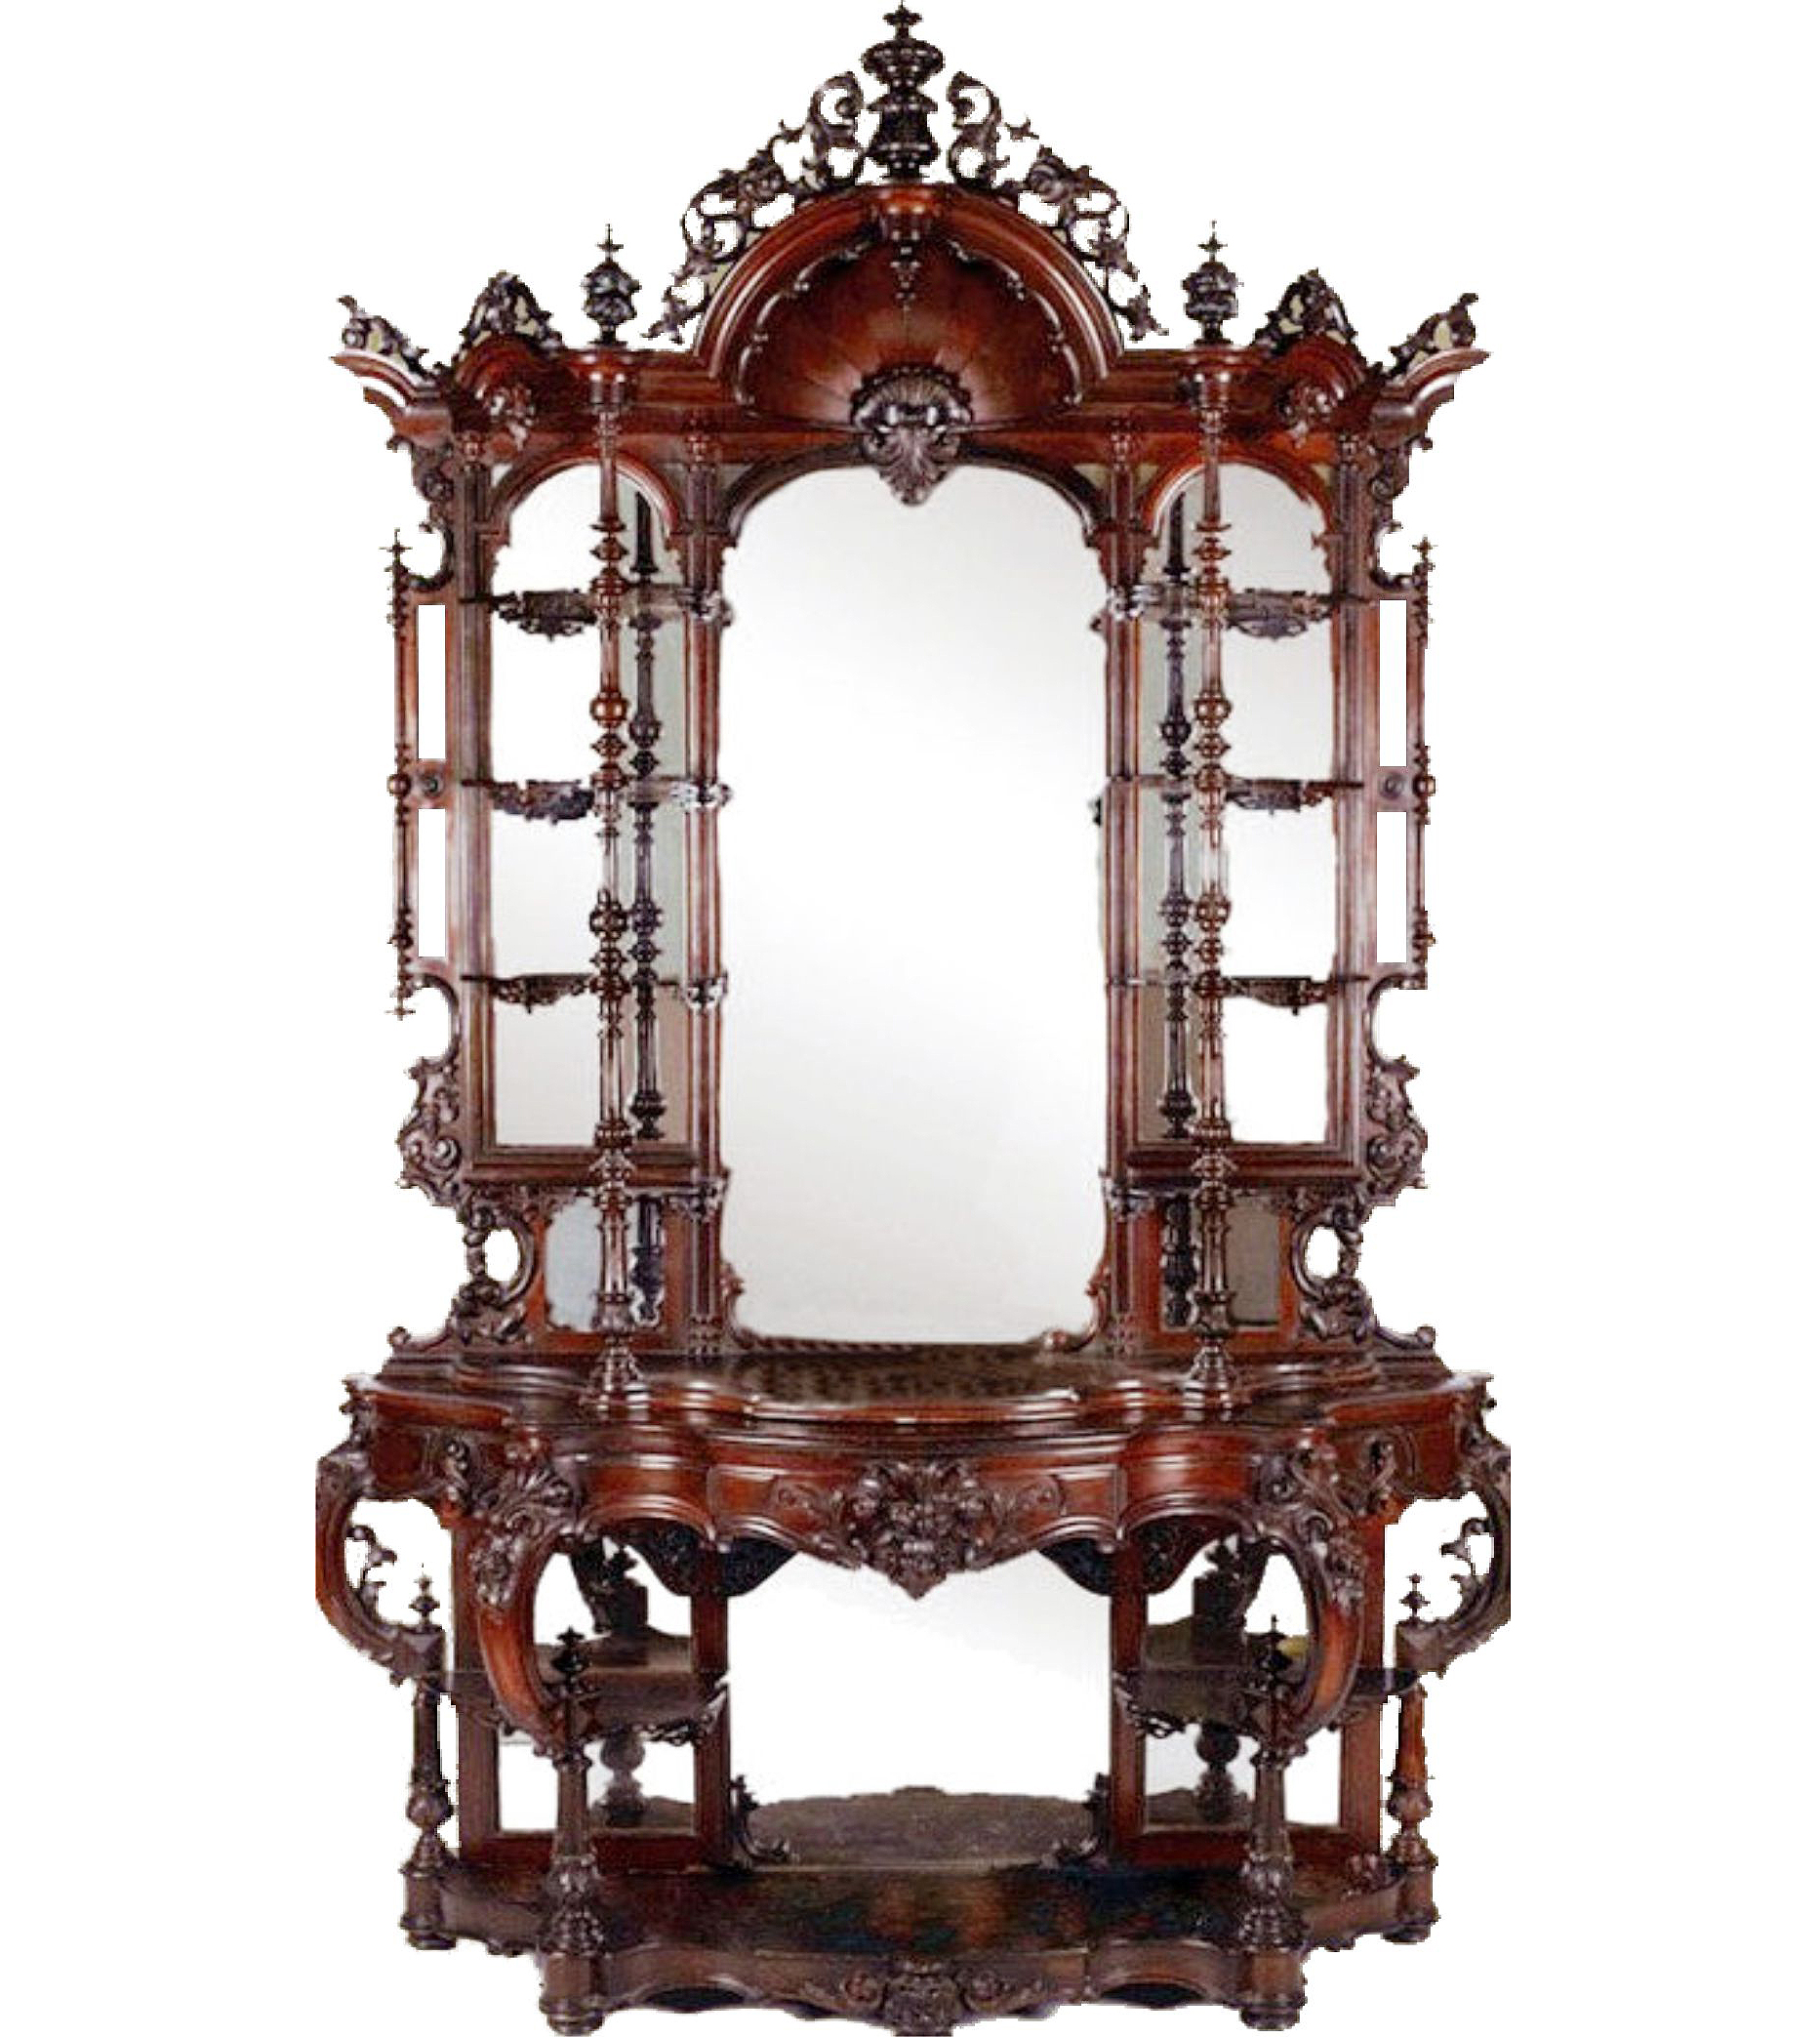 Highest quality Victorian furniture shines at Stevens auction